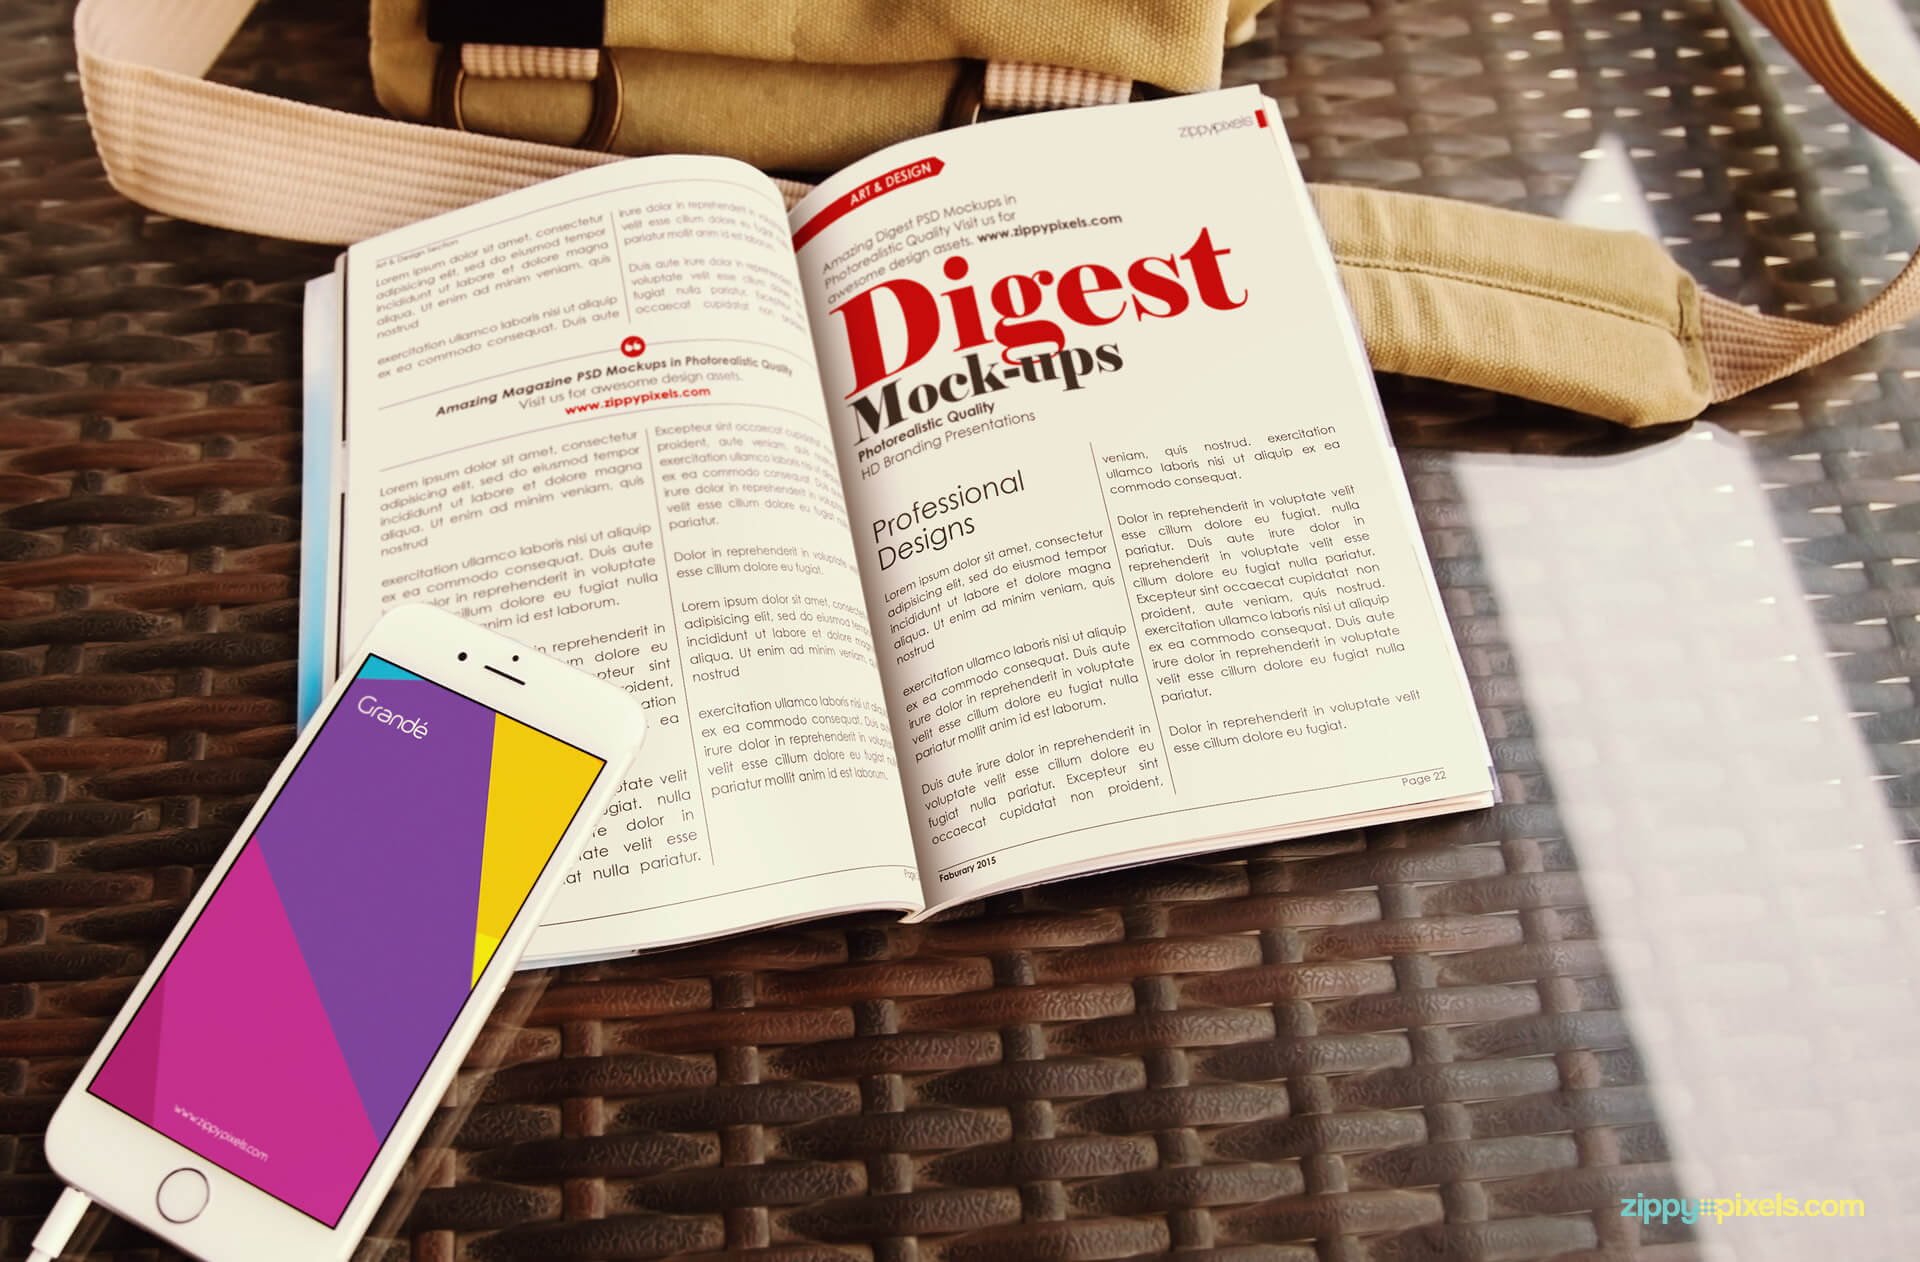 iPhone & opened digest magazine mockup showing iPhone & digest lying on table